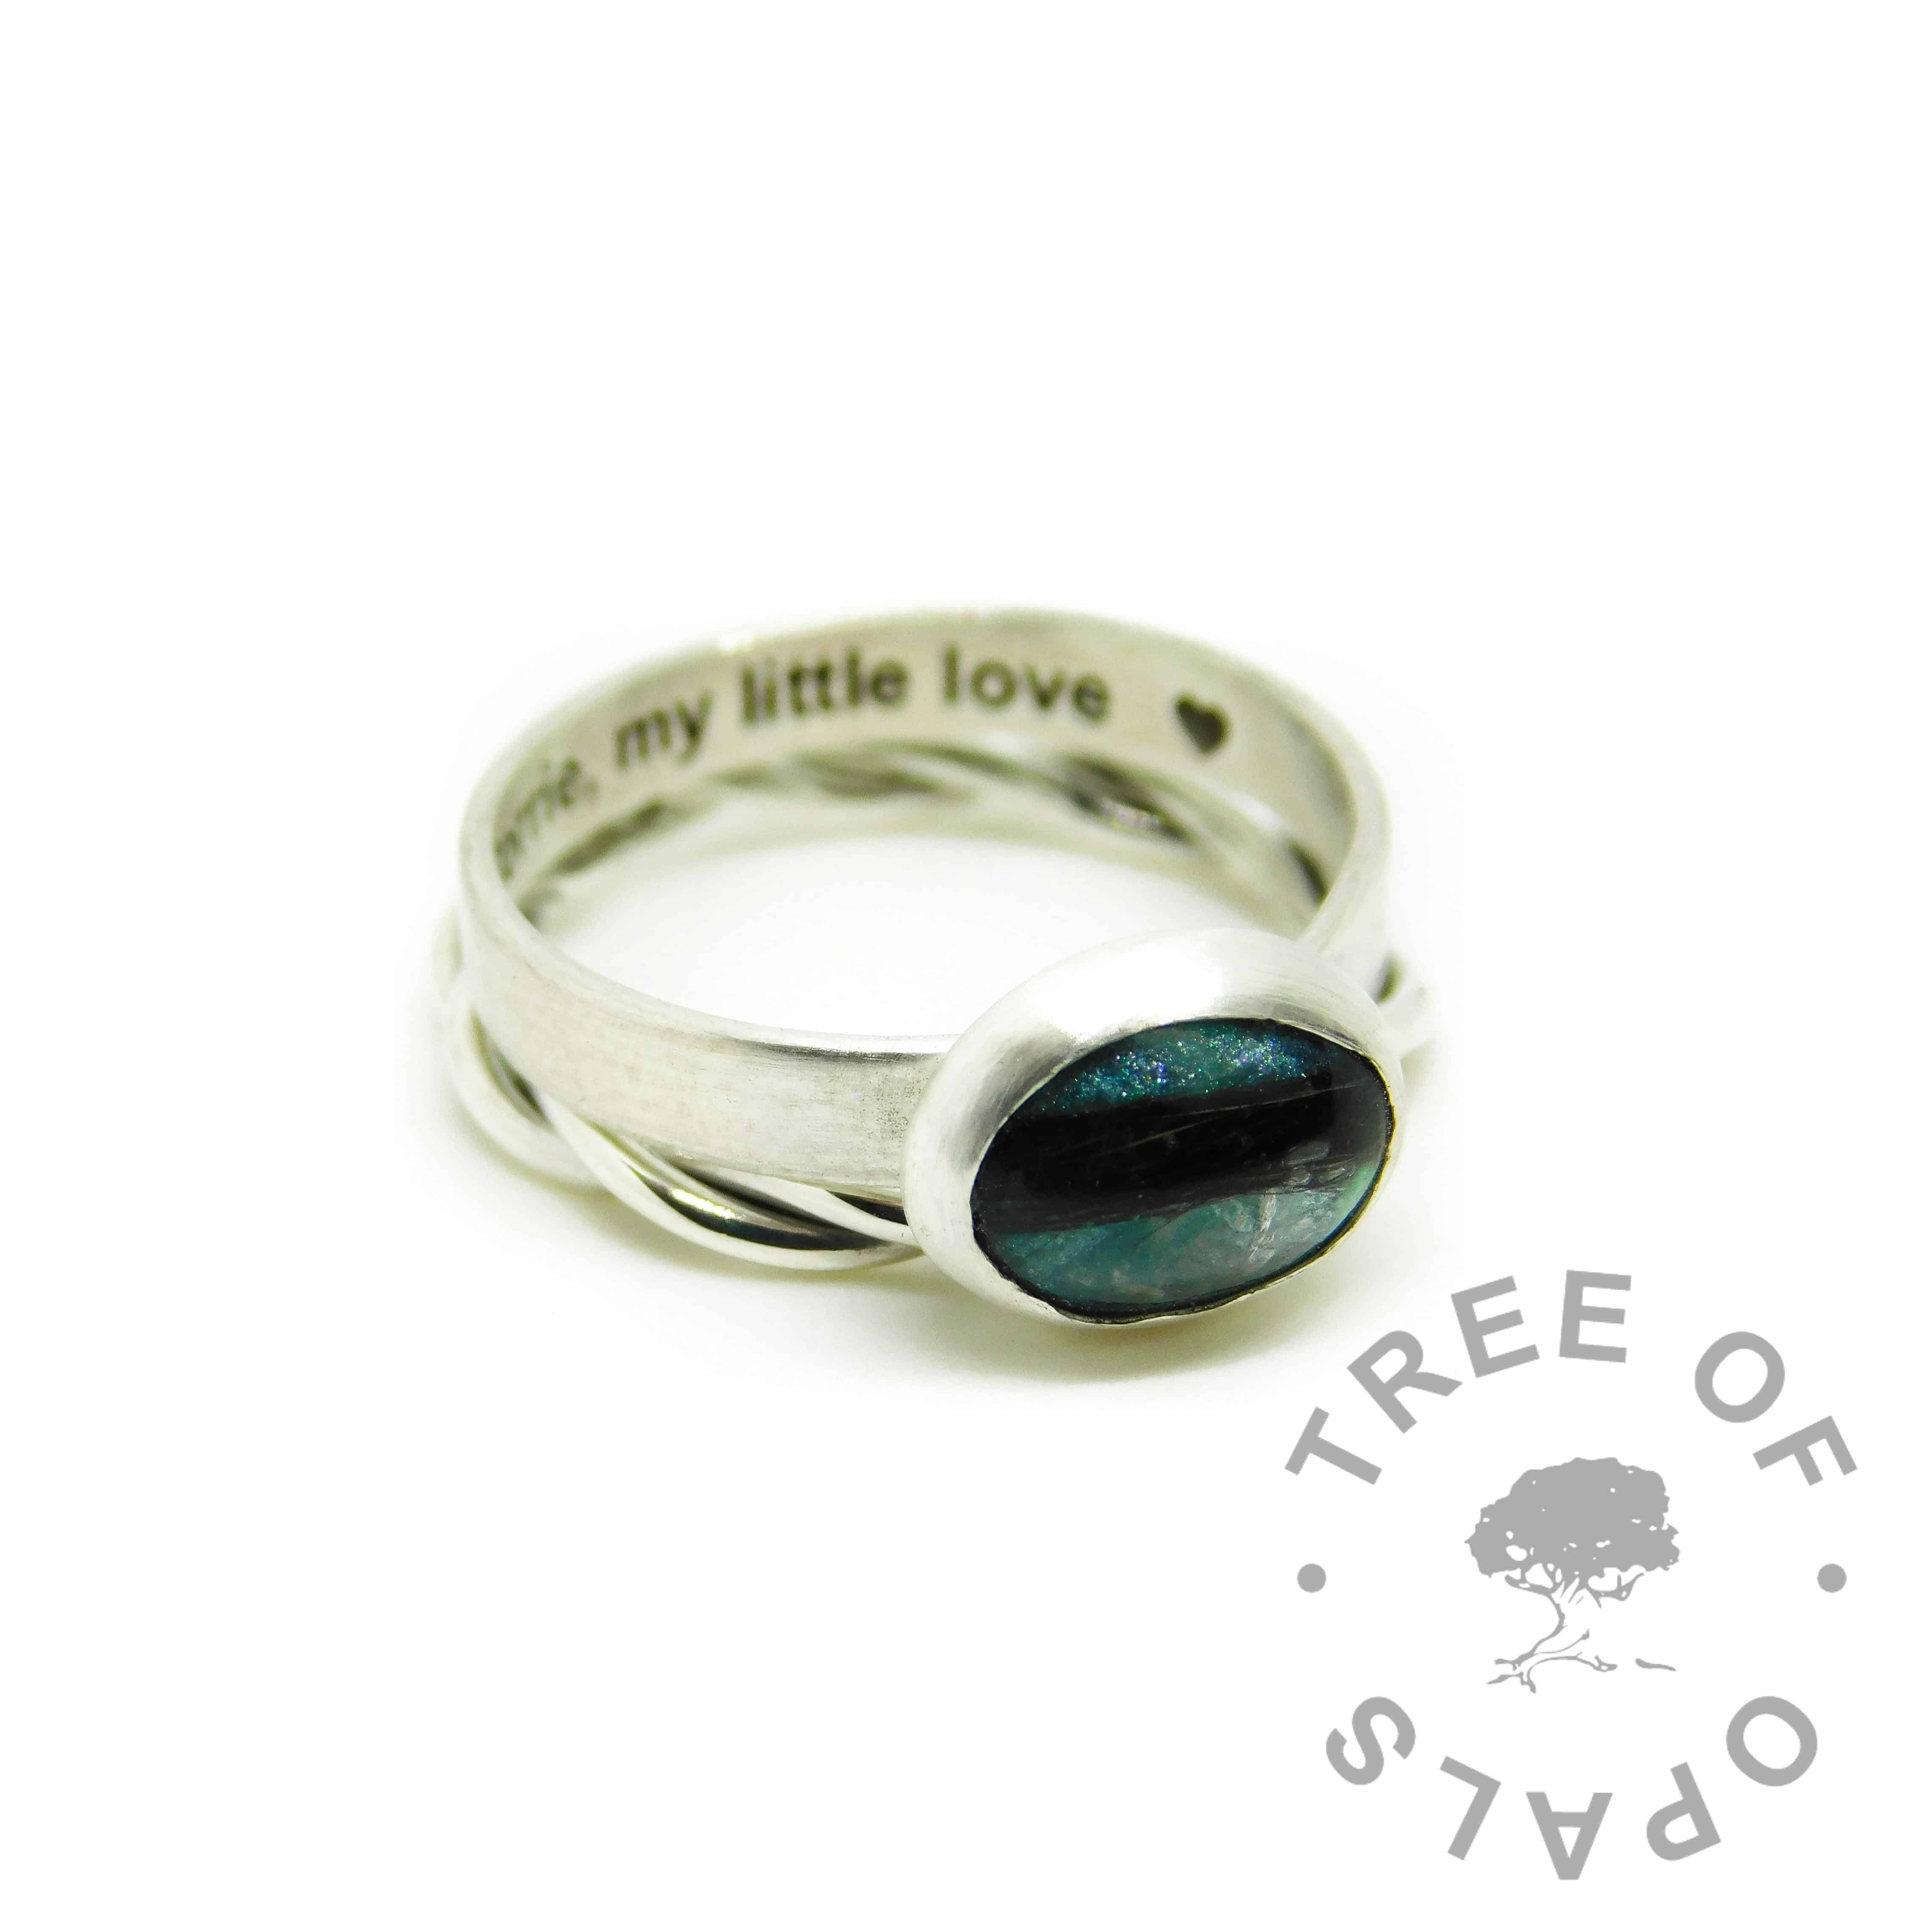 mermaid teal resin sparkle mix and hair ring, brushed band engraved inside with arial font, shown with a twisted wire stacking band